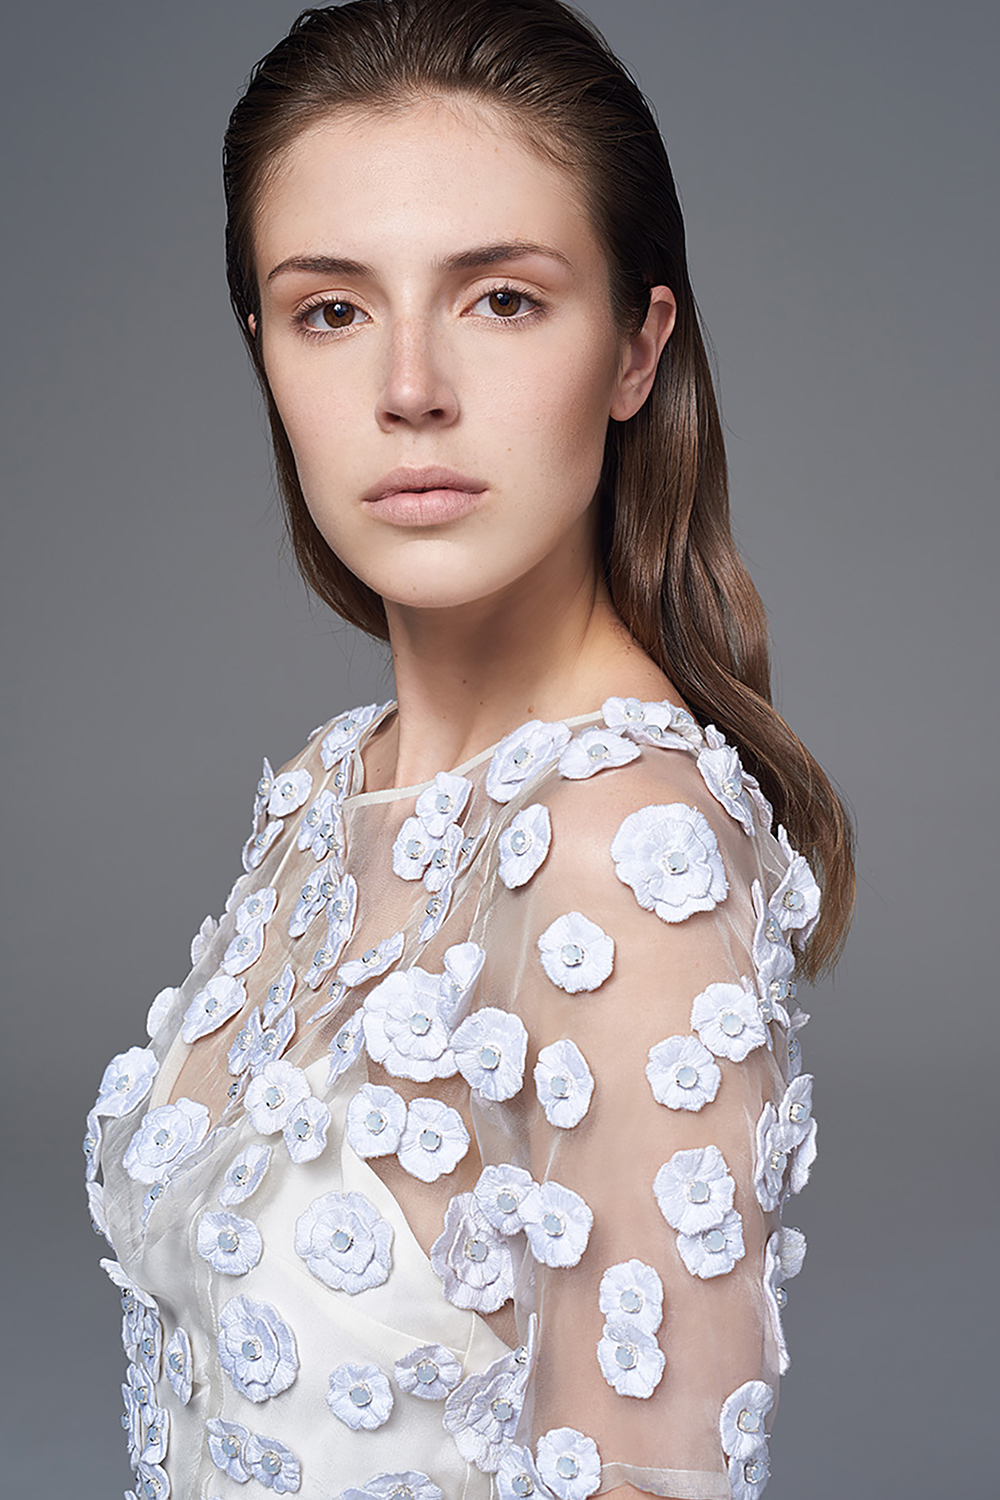 THE OPAL SHEER SILK ORGANZA DRESS WITH 3D FLOWERS AND OPAL STONE CENTRES. BRIDAL WEDDING DRESS BY HALFPENNY LONDON